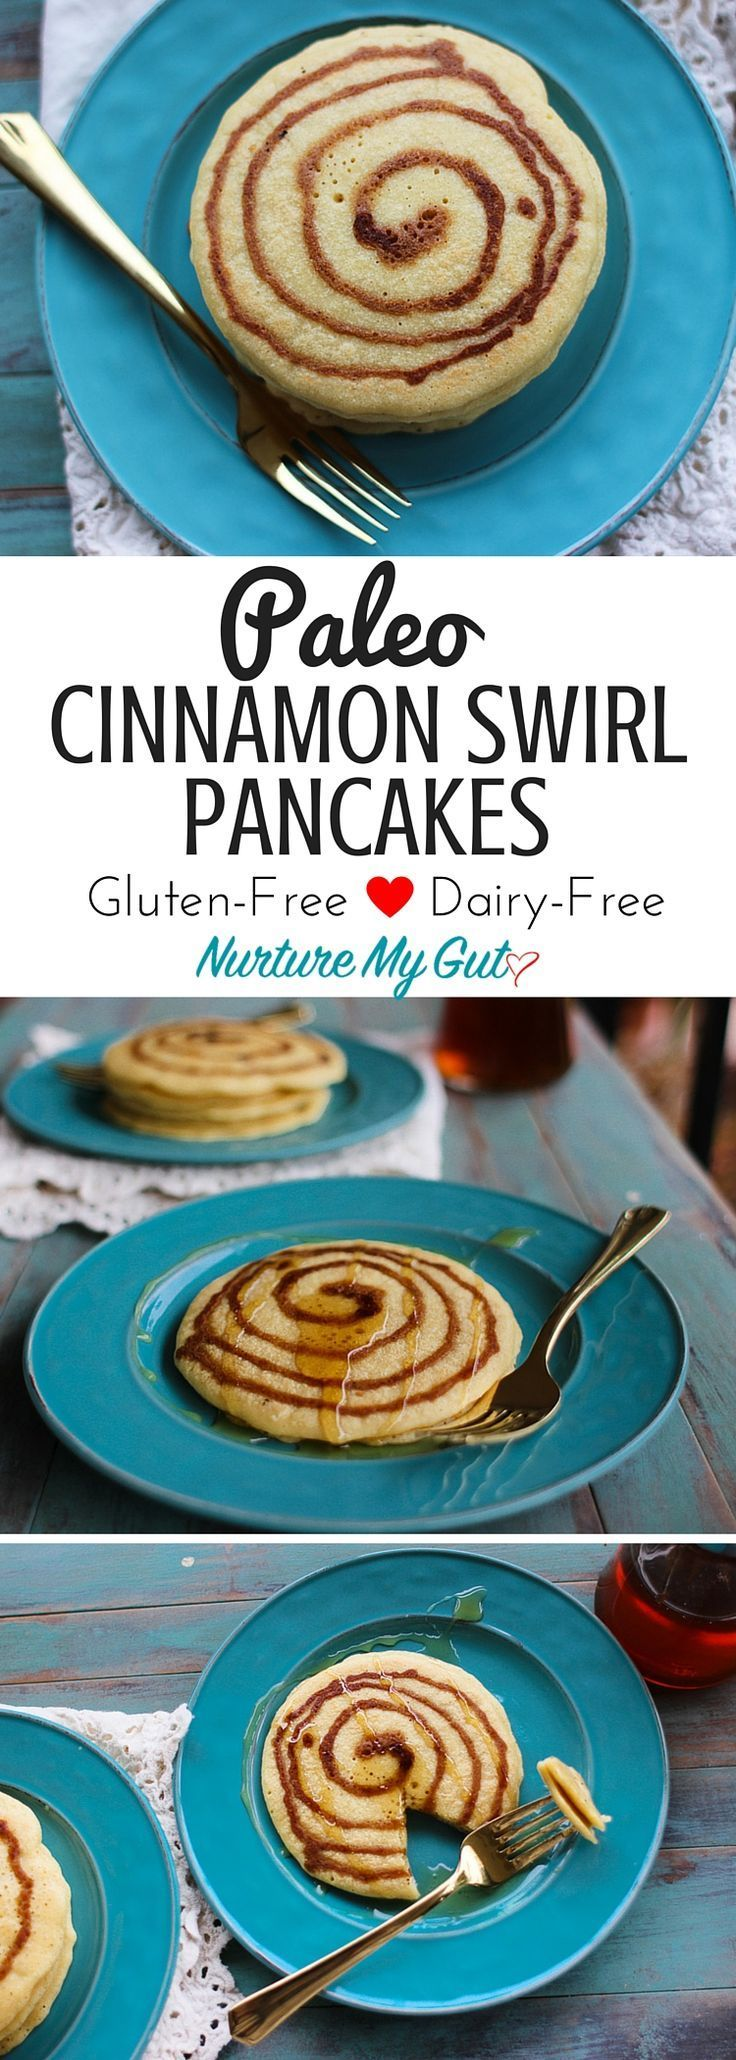 ... Cinnamon Roll Pancakes on Pinterest | Pancakes, Cinnamon and French